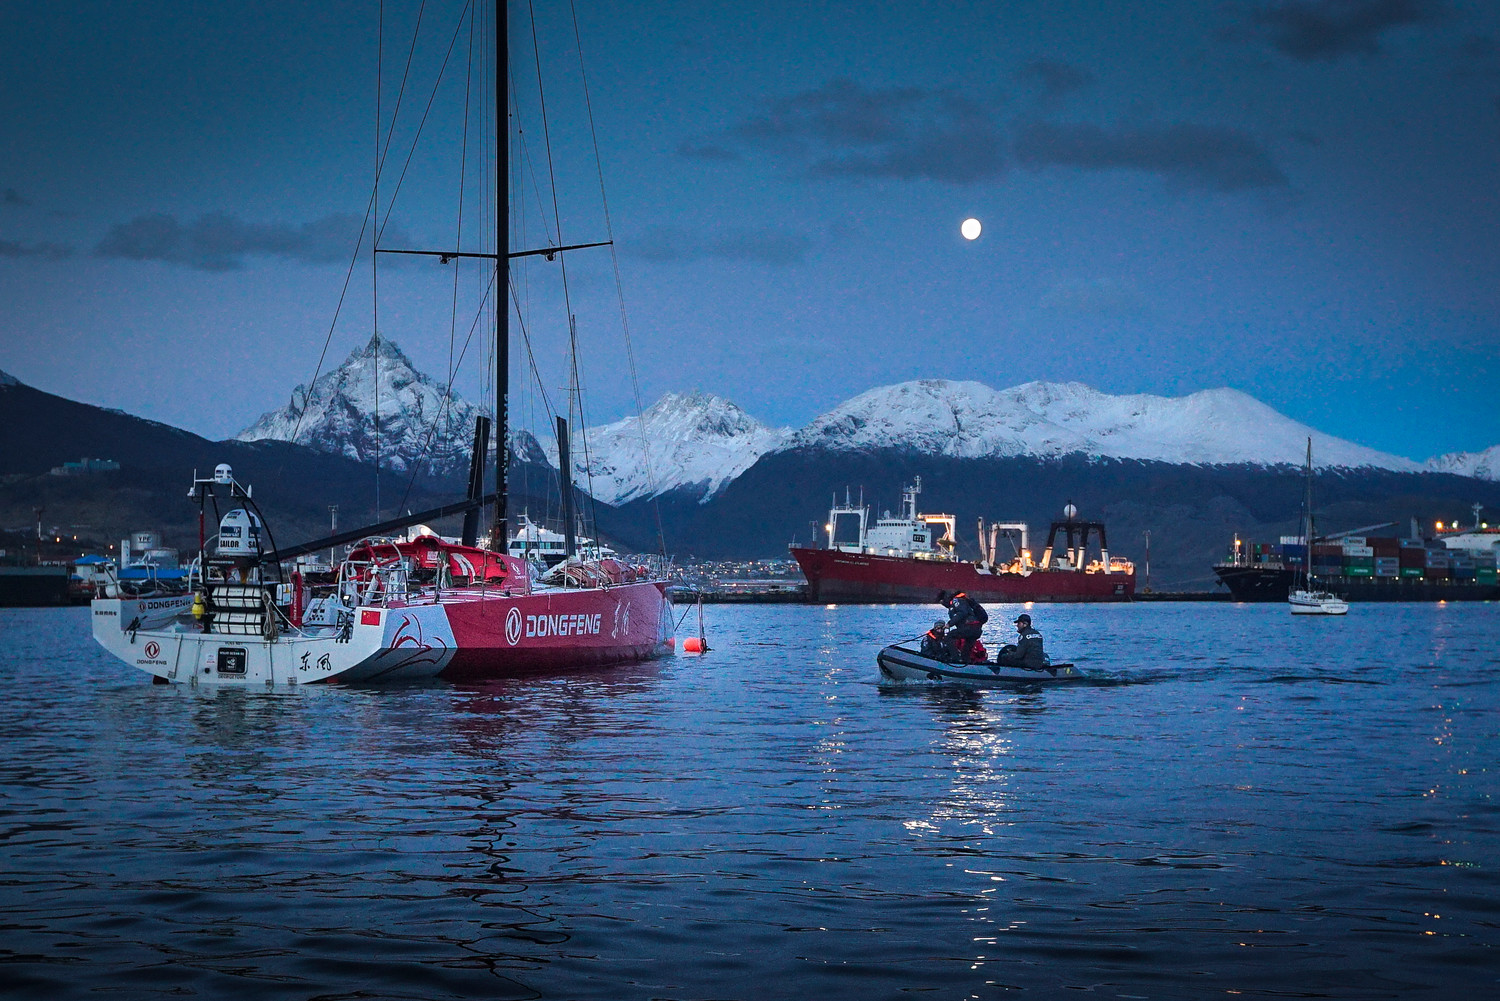 April 1, 2015. Leg 5 to Itajai onboard Dongfeng Race Team. Day 14. The final evening in Ushuaia before the motor-sail journey to Itajai for a new mast. Yann Riou / Dongfeng Race Team / Volvo Ocean Race